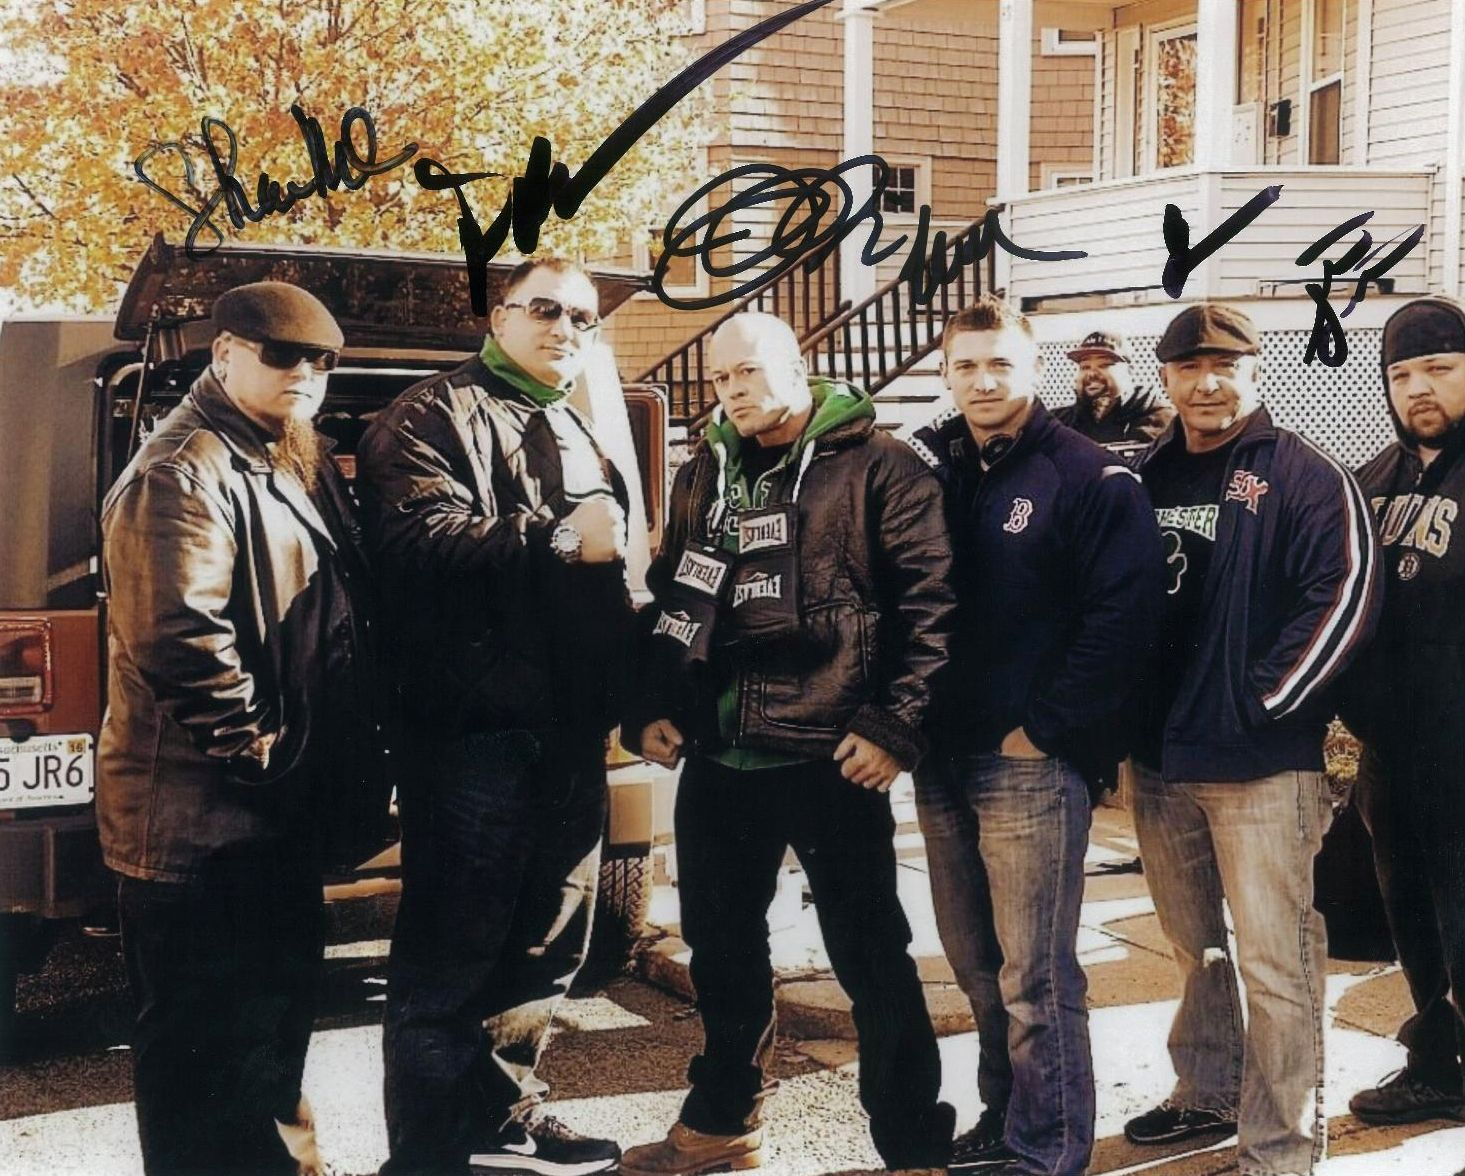 Boston Film Series Set of 'The Ave' Actors Shawn McCarron Peter Karras John Joseph Quinlan Worth Olsen James Panagopoulos & Tim Santos 11x14 Signed Autograph #JohnQuinlan